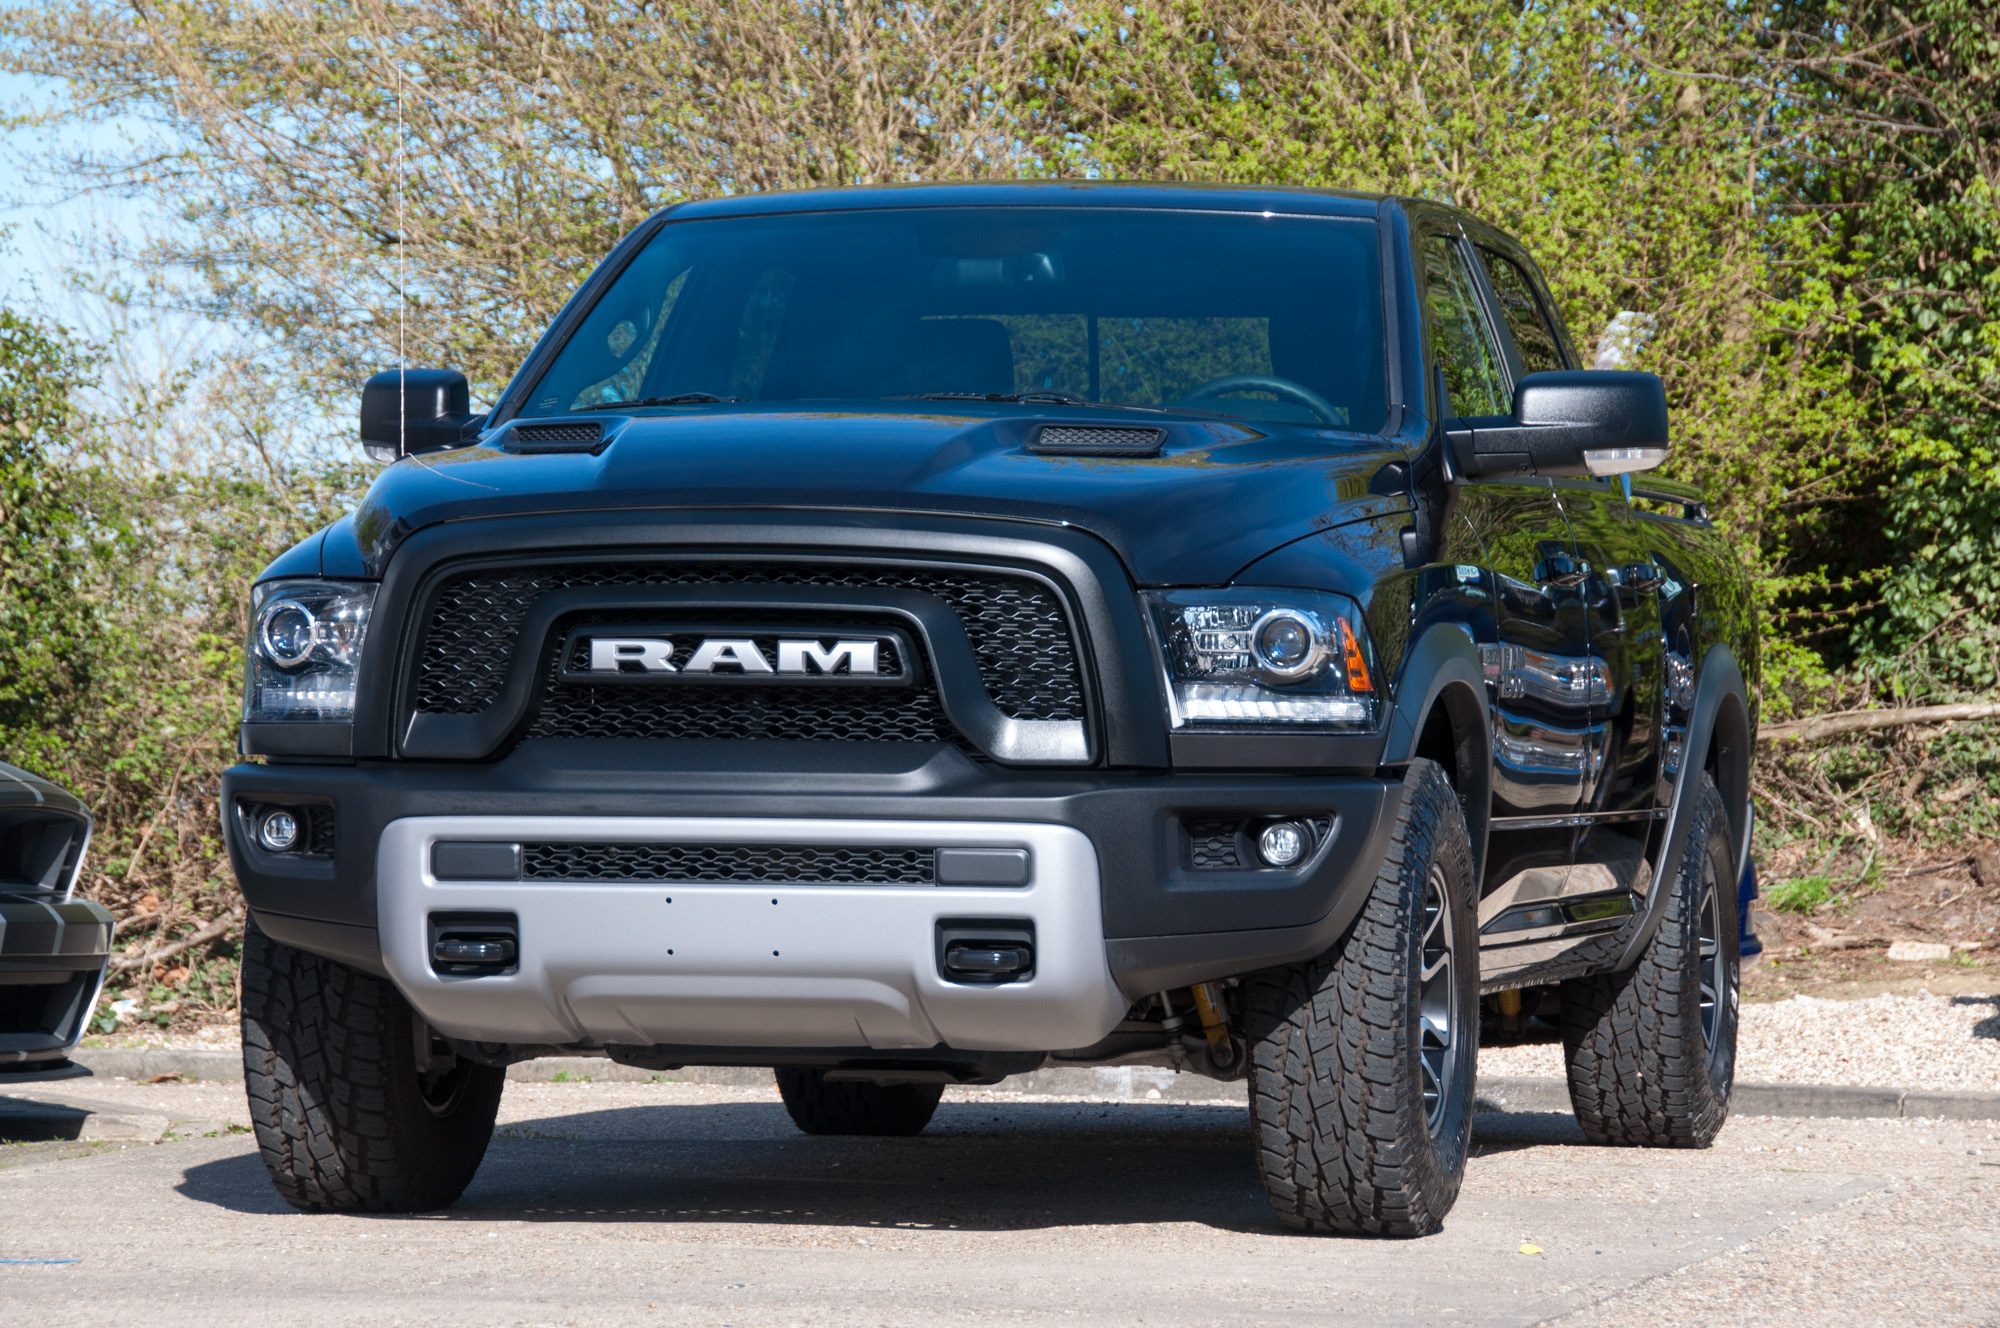 new 2016 dodge ram 1500 rebel 4x4 for sale in the uk. Black Bedroom Furniture Sets. Home Design Ideas